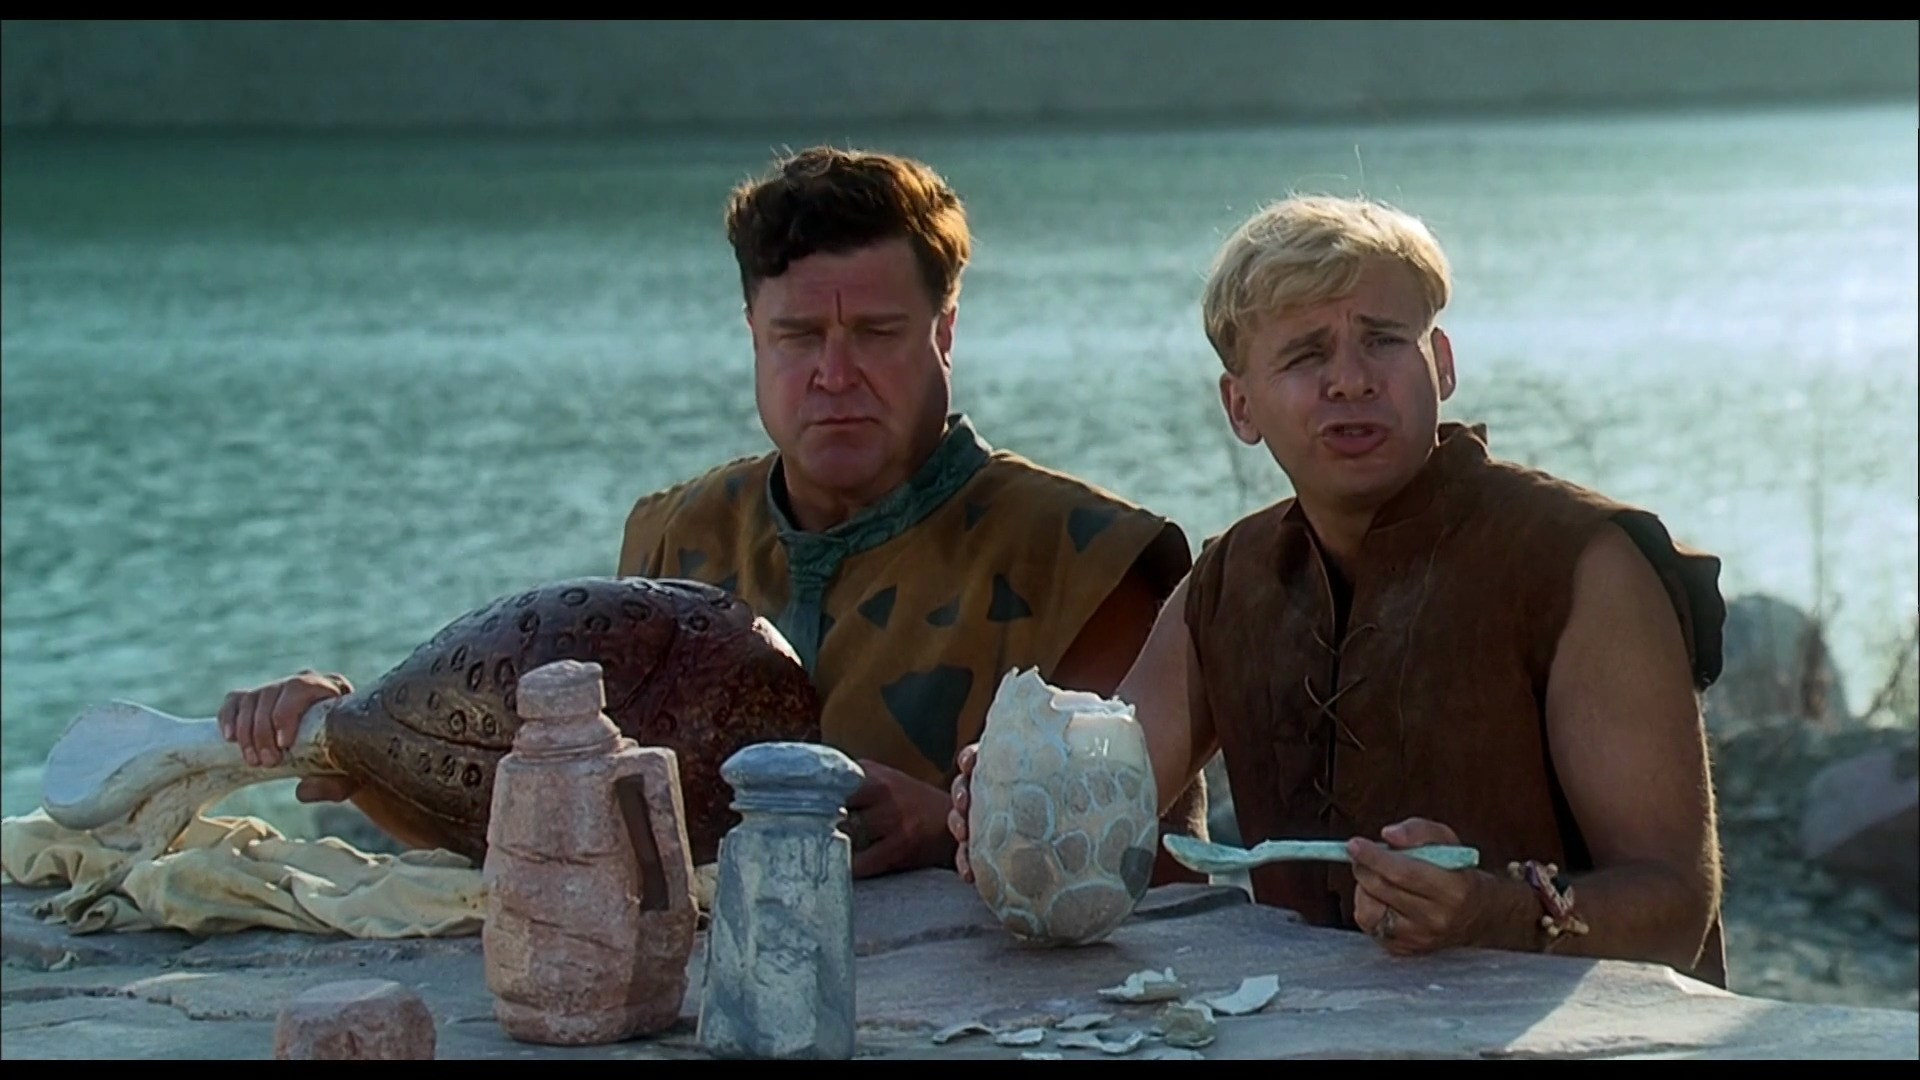 The Flintstones - 1994 Film - Fred and Barney with a Dodo Egg.jpg